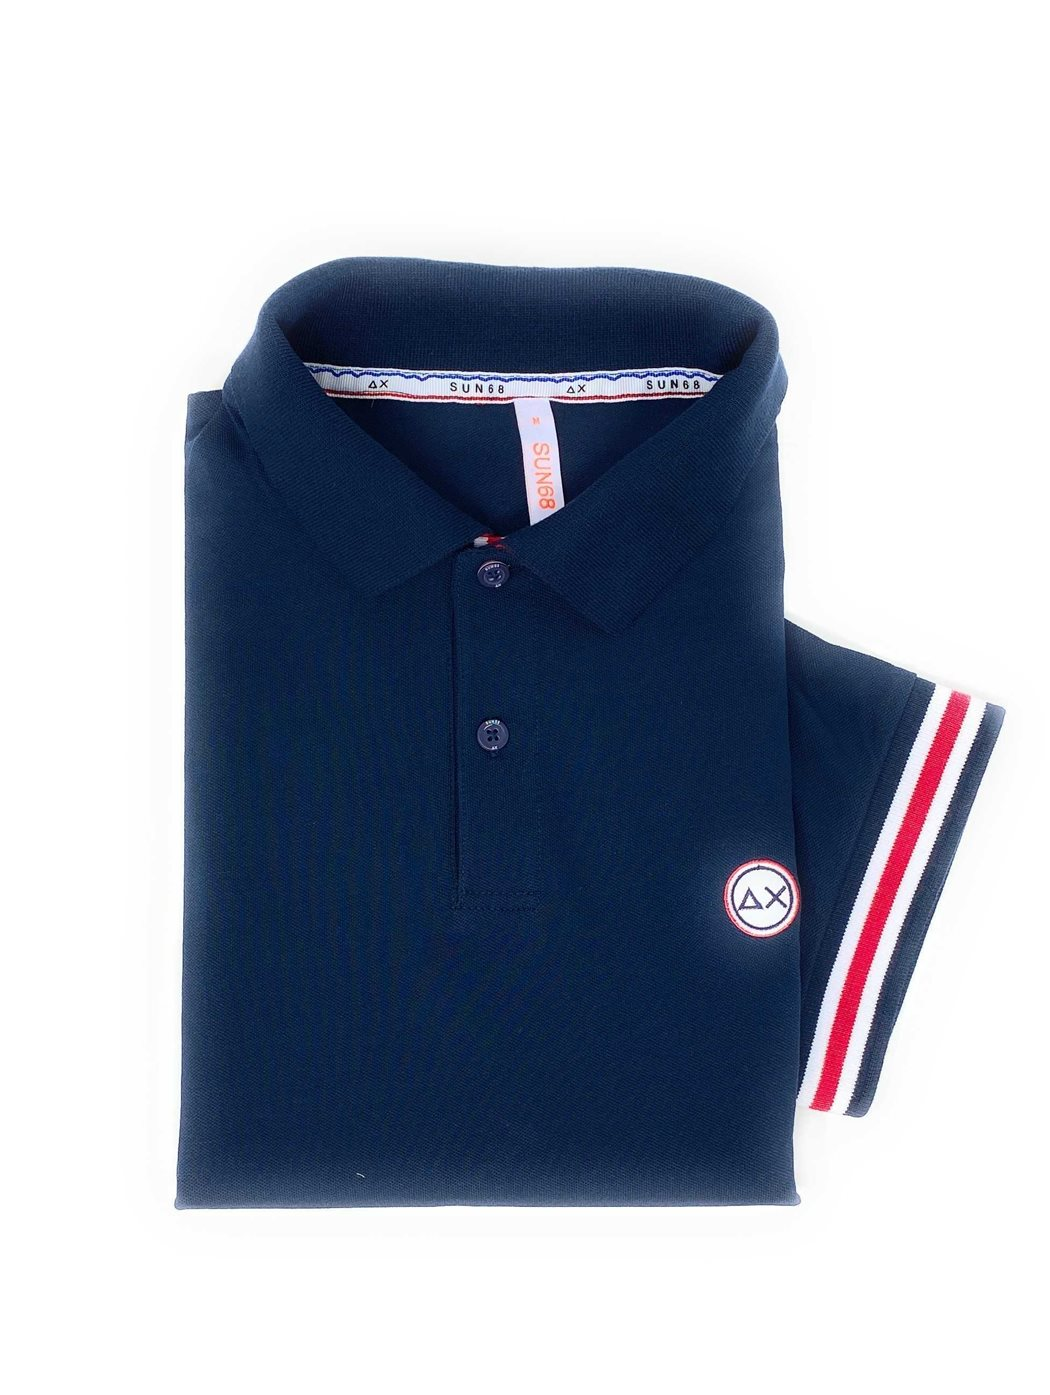 SUN68 a30110 07 navy bl POLO